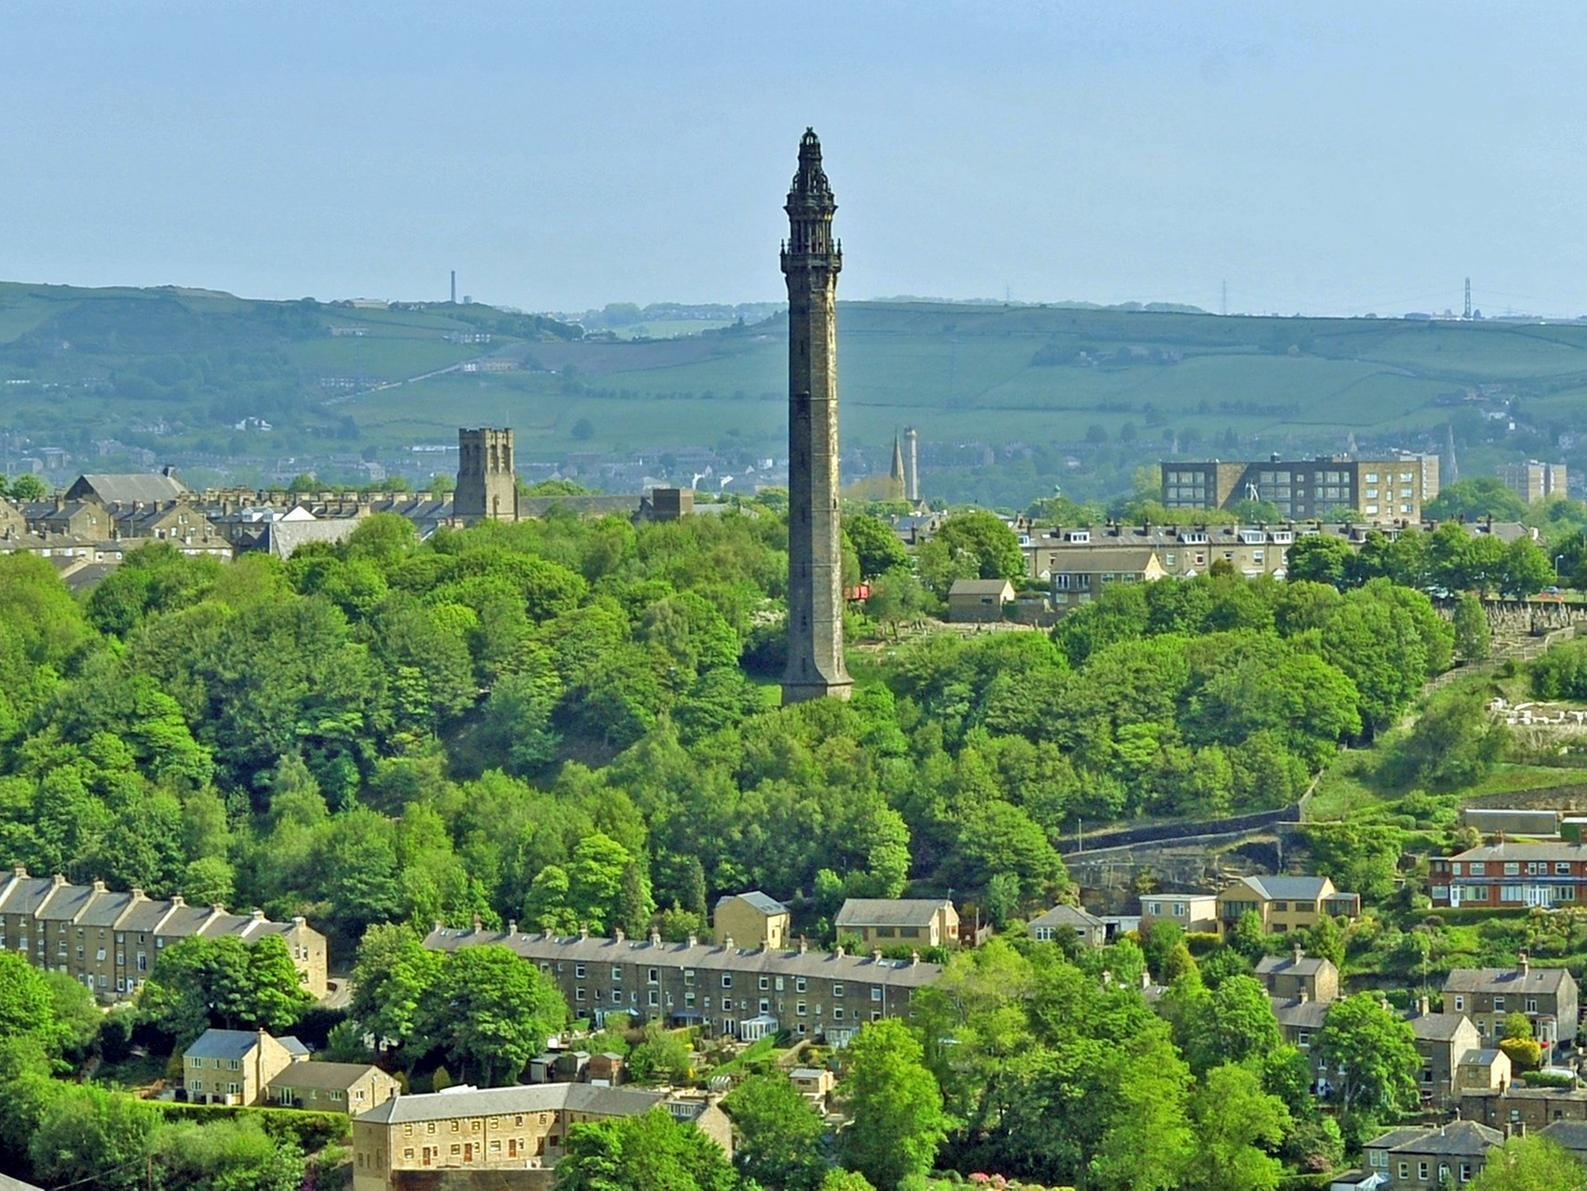 The story of Wainhouse Tower - the Halifax chimney that never was ...